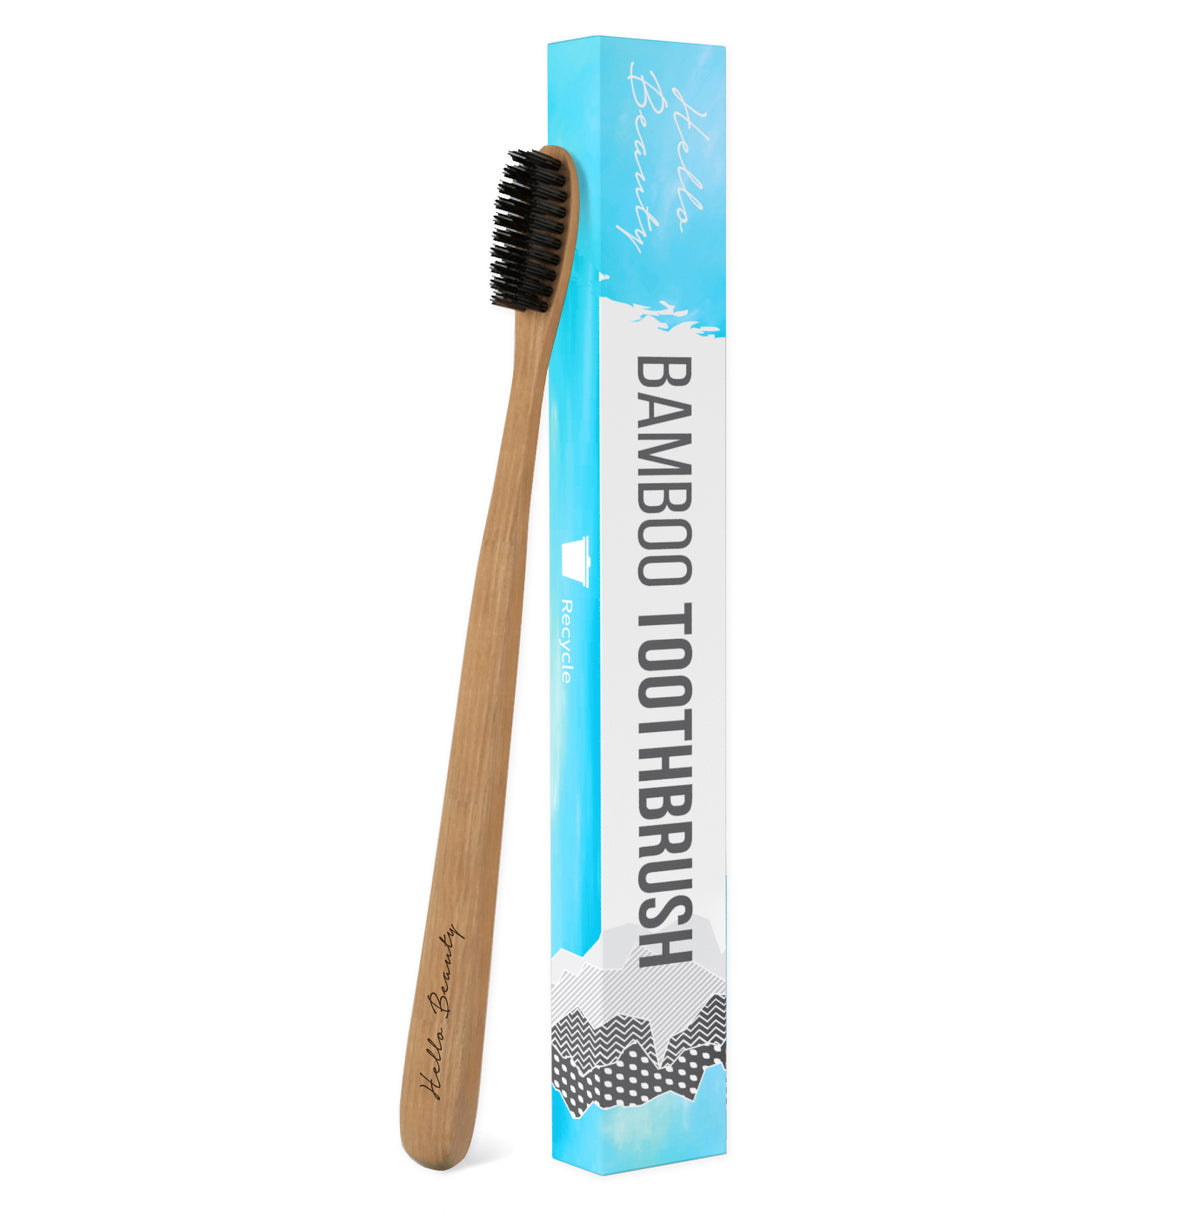 100% Natural Biodegradable Bamboo Toothbrush